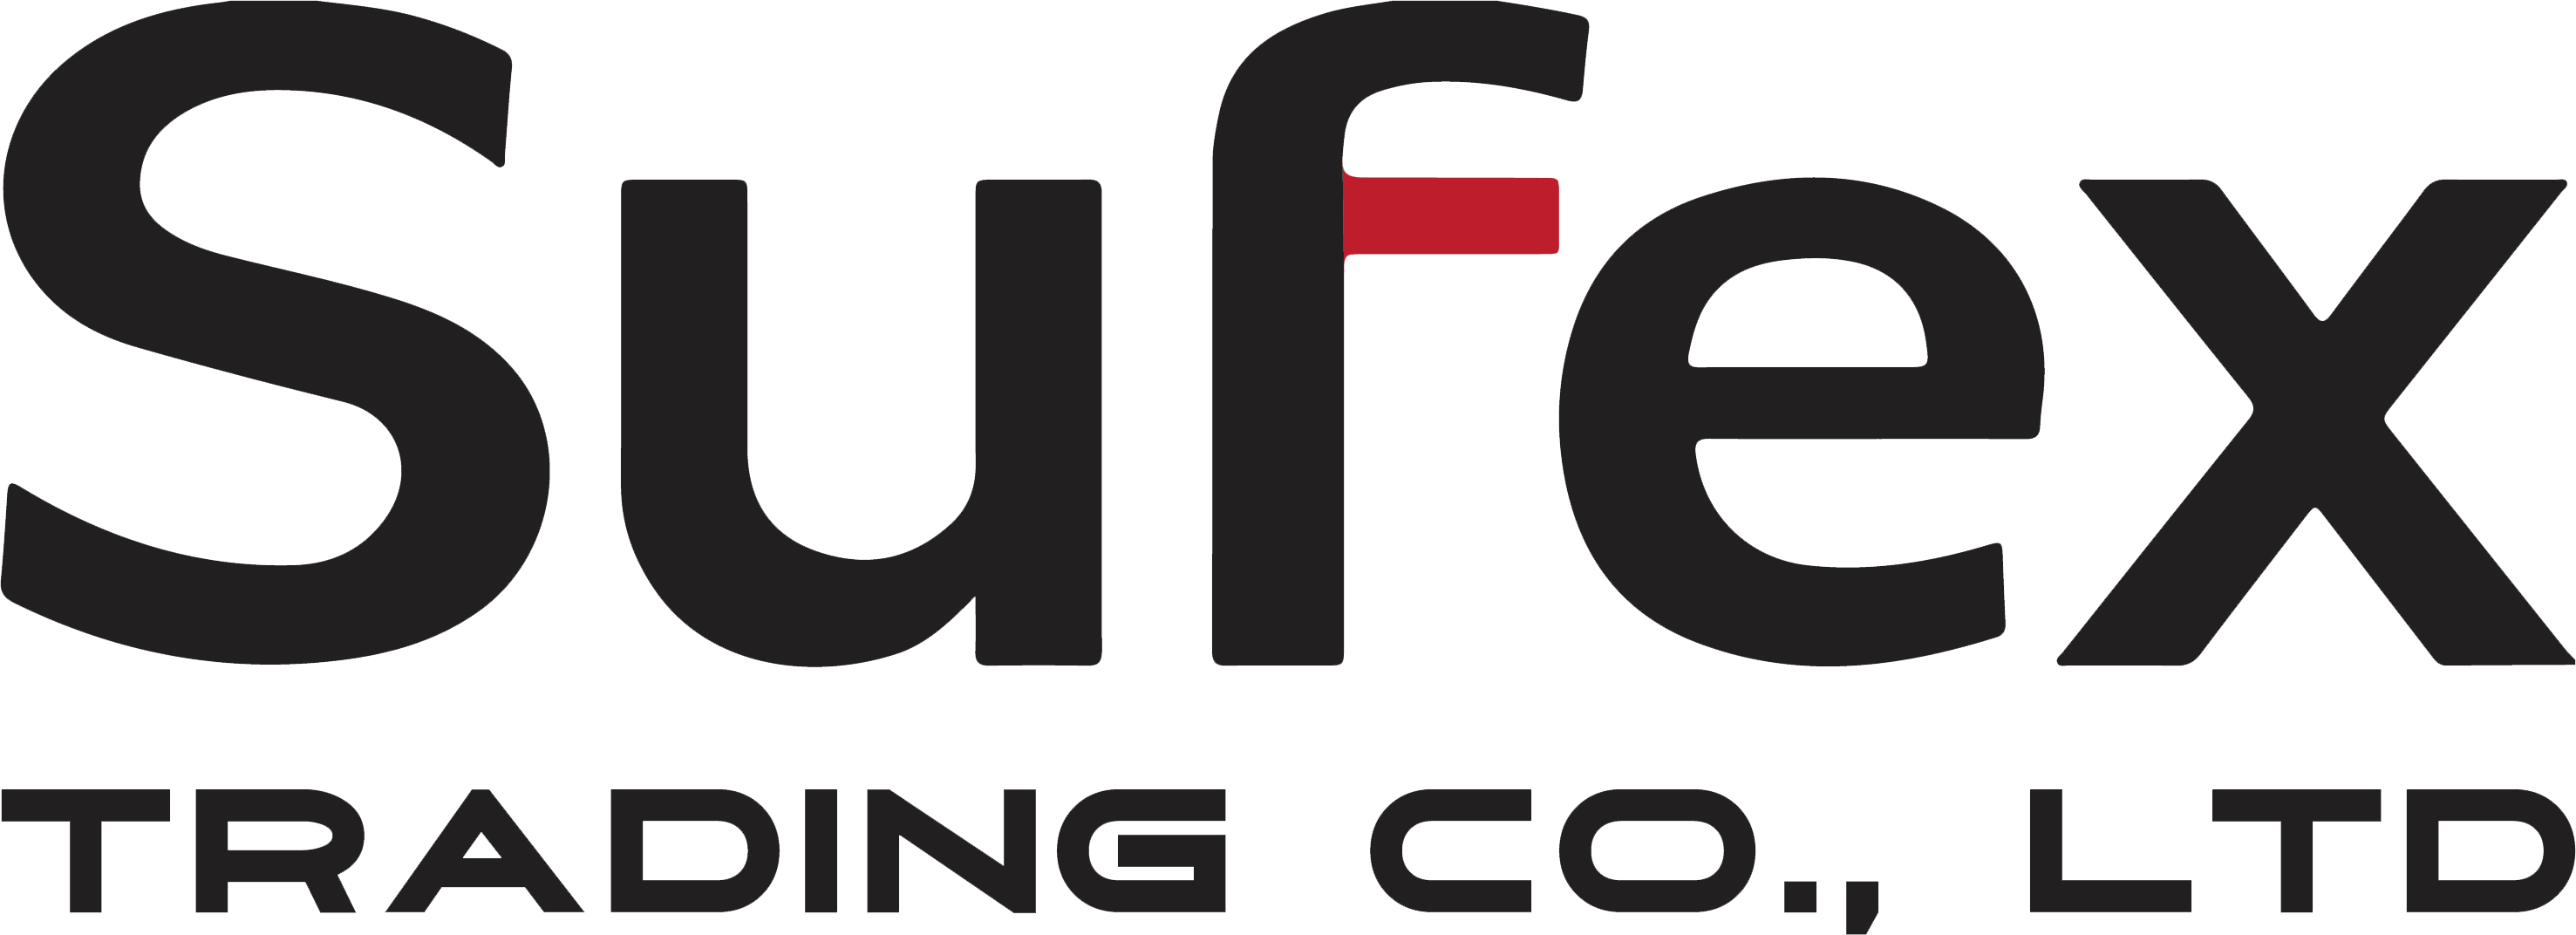 SUFEX TRADING Co., Ltd.